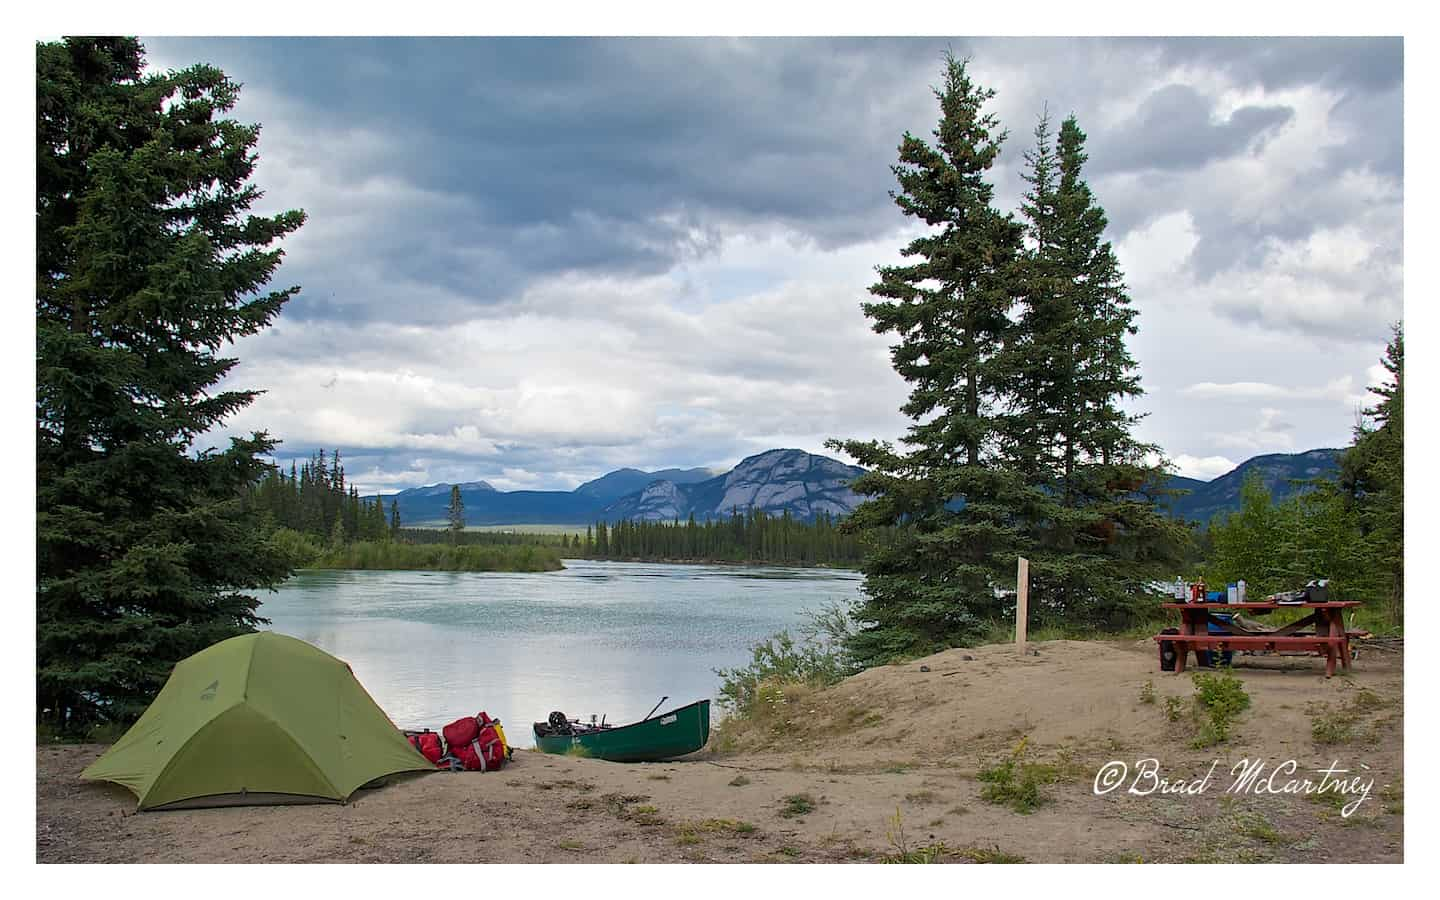 First campsite next to the Yukon river